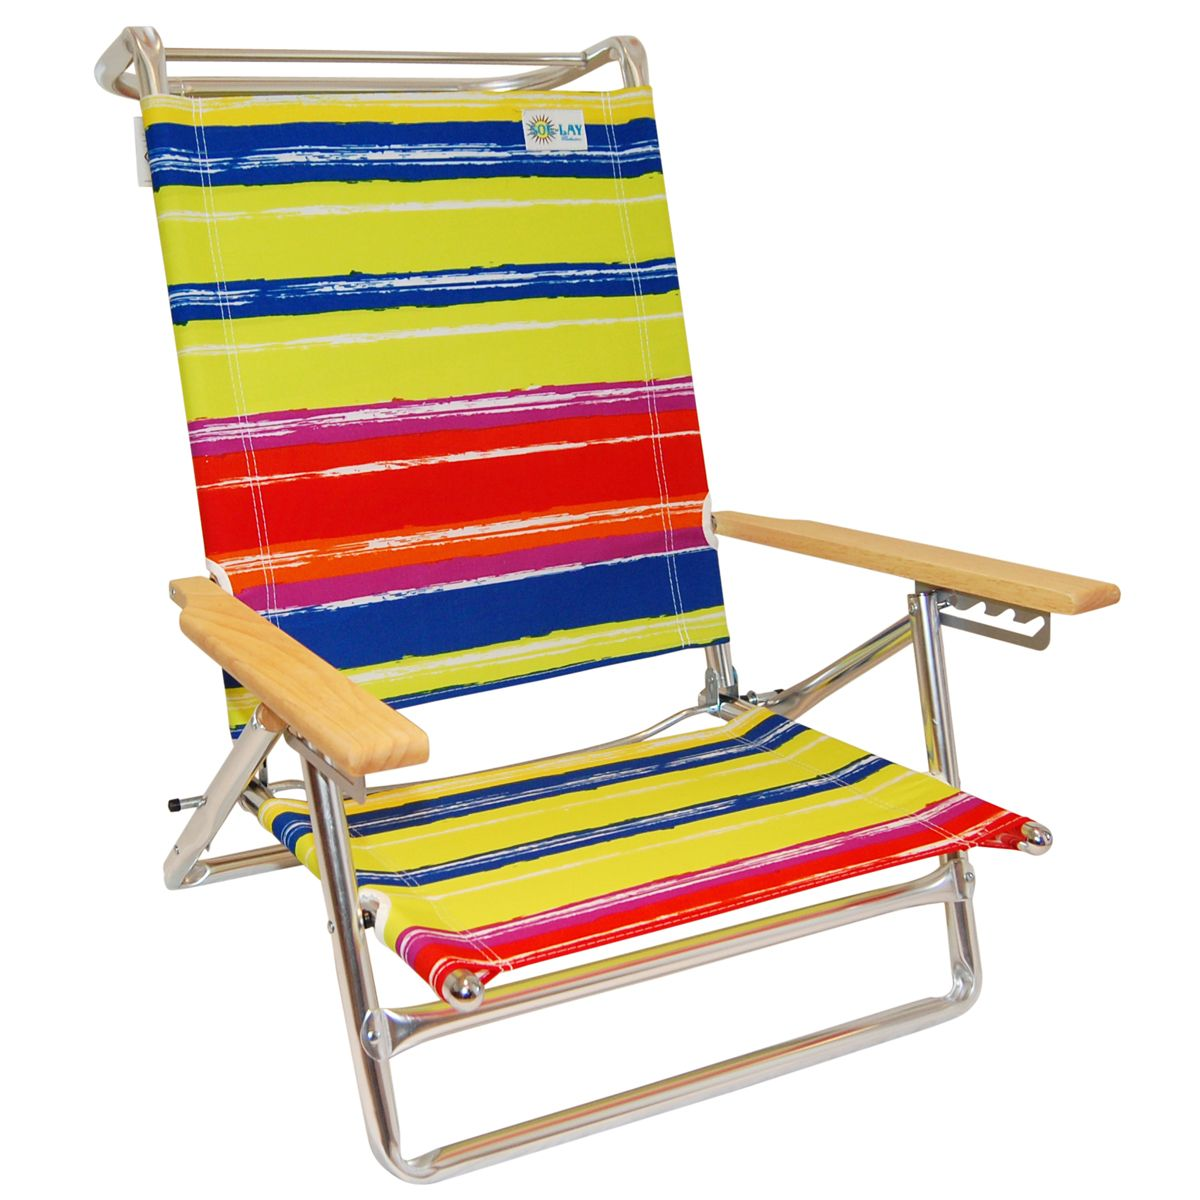 Outdoor folding chair parts - Folding Beach Chair Parts Double Foldable Beach Chair